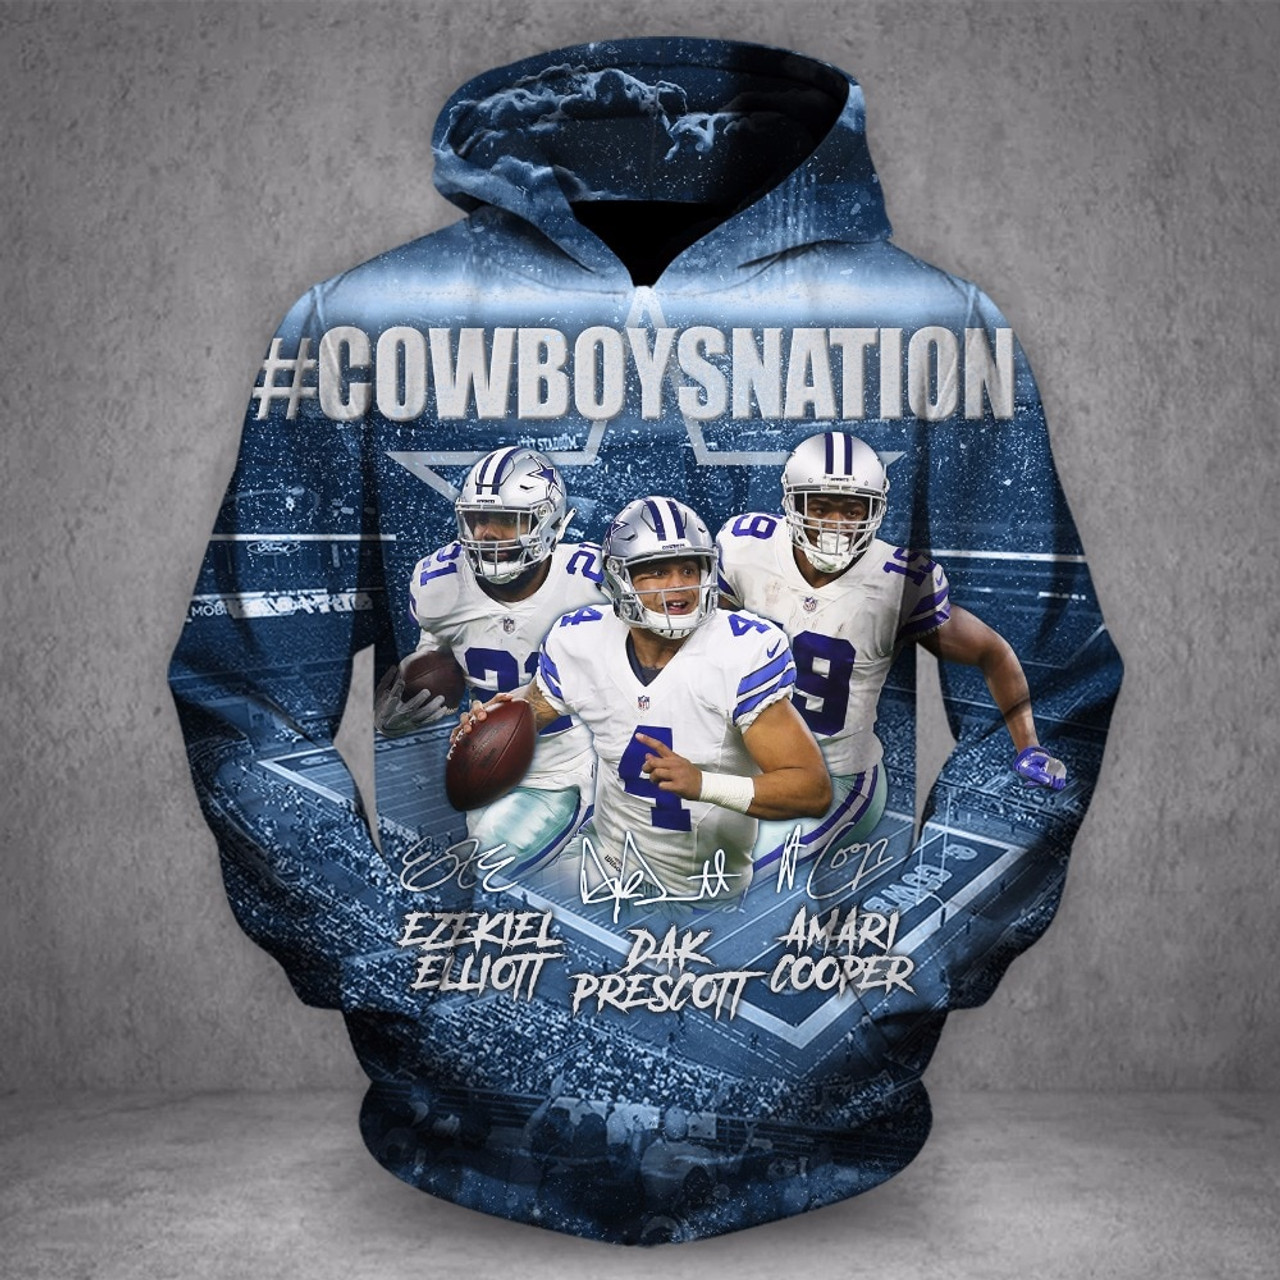 buy online ff7ba 88588 **(OFFICIALLY-LICENSED-N.F.L.DALLAS-COWBOYS-NATION &  DAK-PRESCOTT-NO.4-STYLISH-PULLOVER-HOODIES/NICE-CUSTOM-3D-GRAPHIC-PRINTED-DOUBLE-SIDED-ALL-OVER-G...